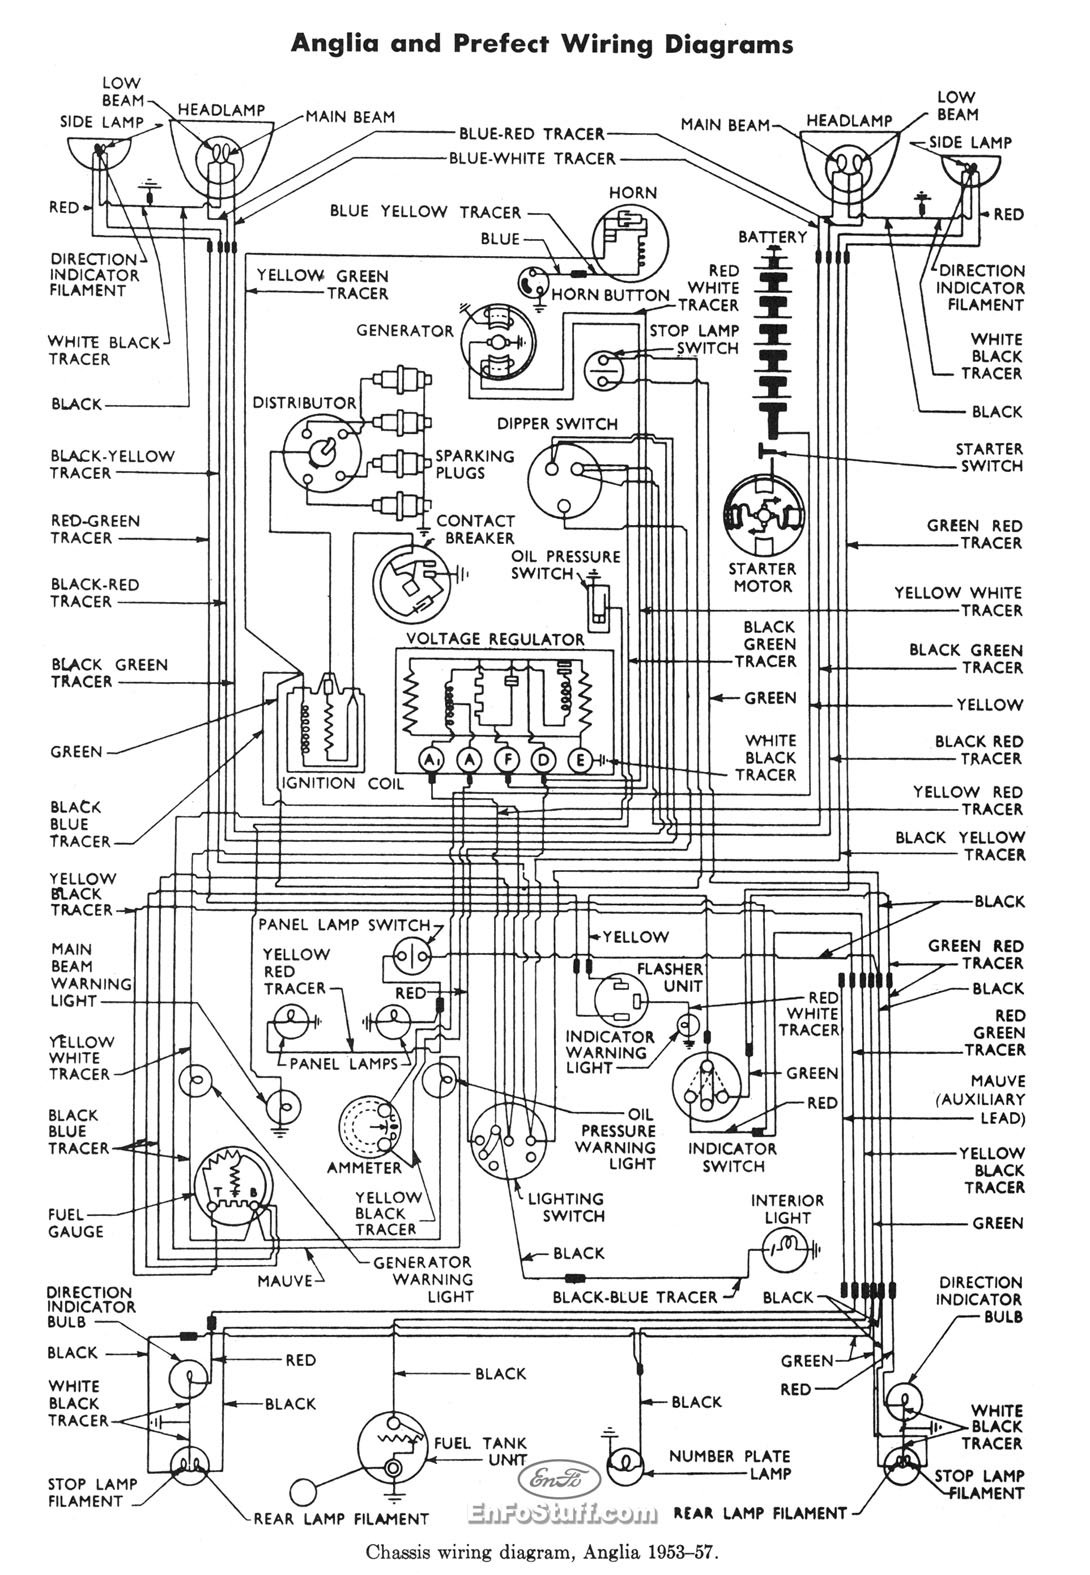 wiring diagram for ford anglia 1953 57 rh enfostuff com